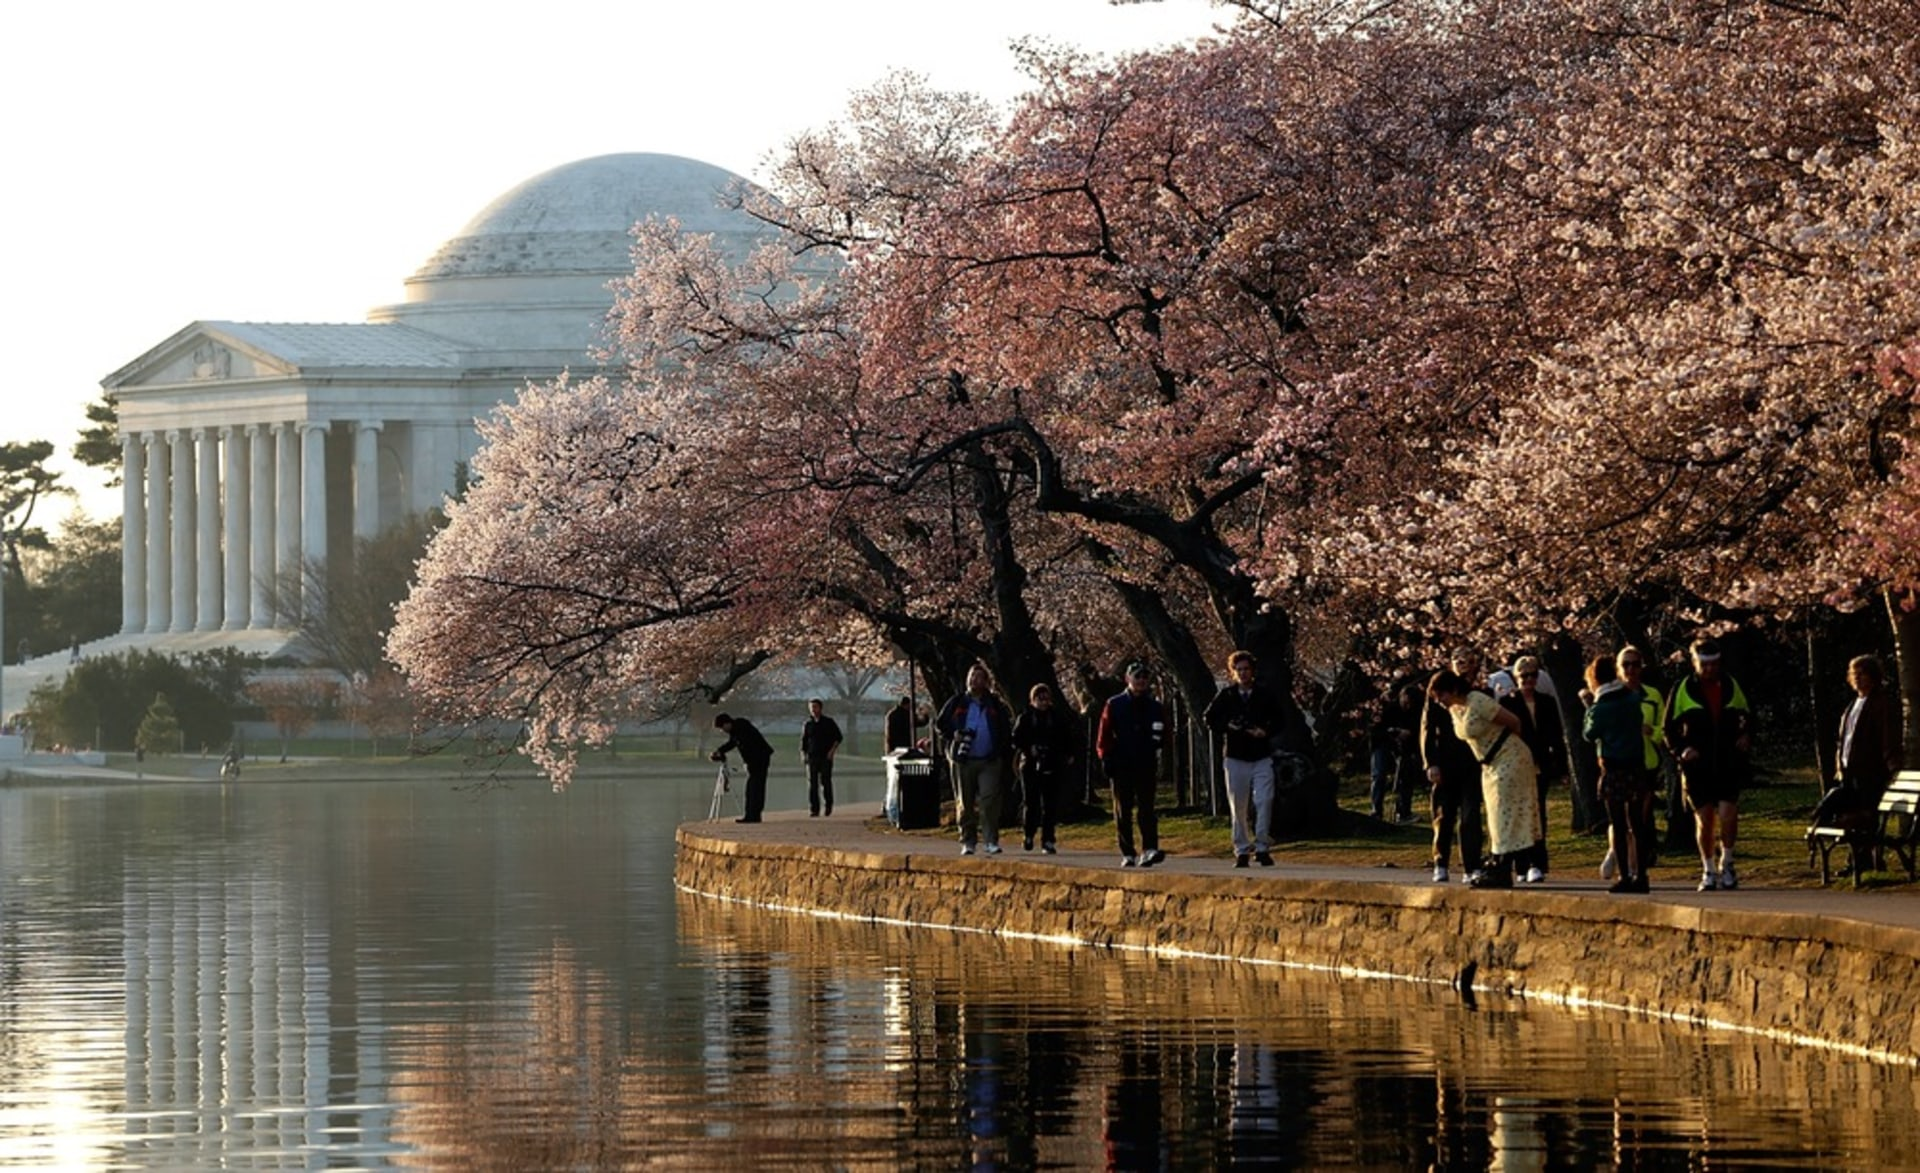 Image: DC's Cherry Blossoms Come To Late Bloom